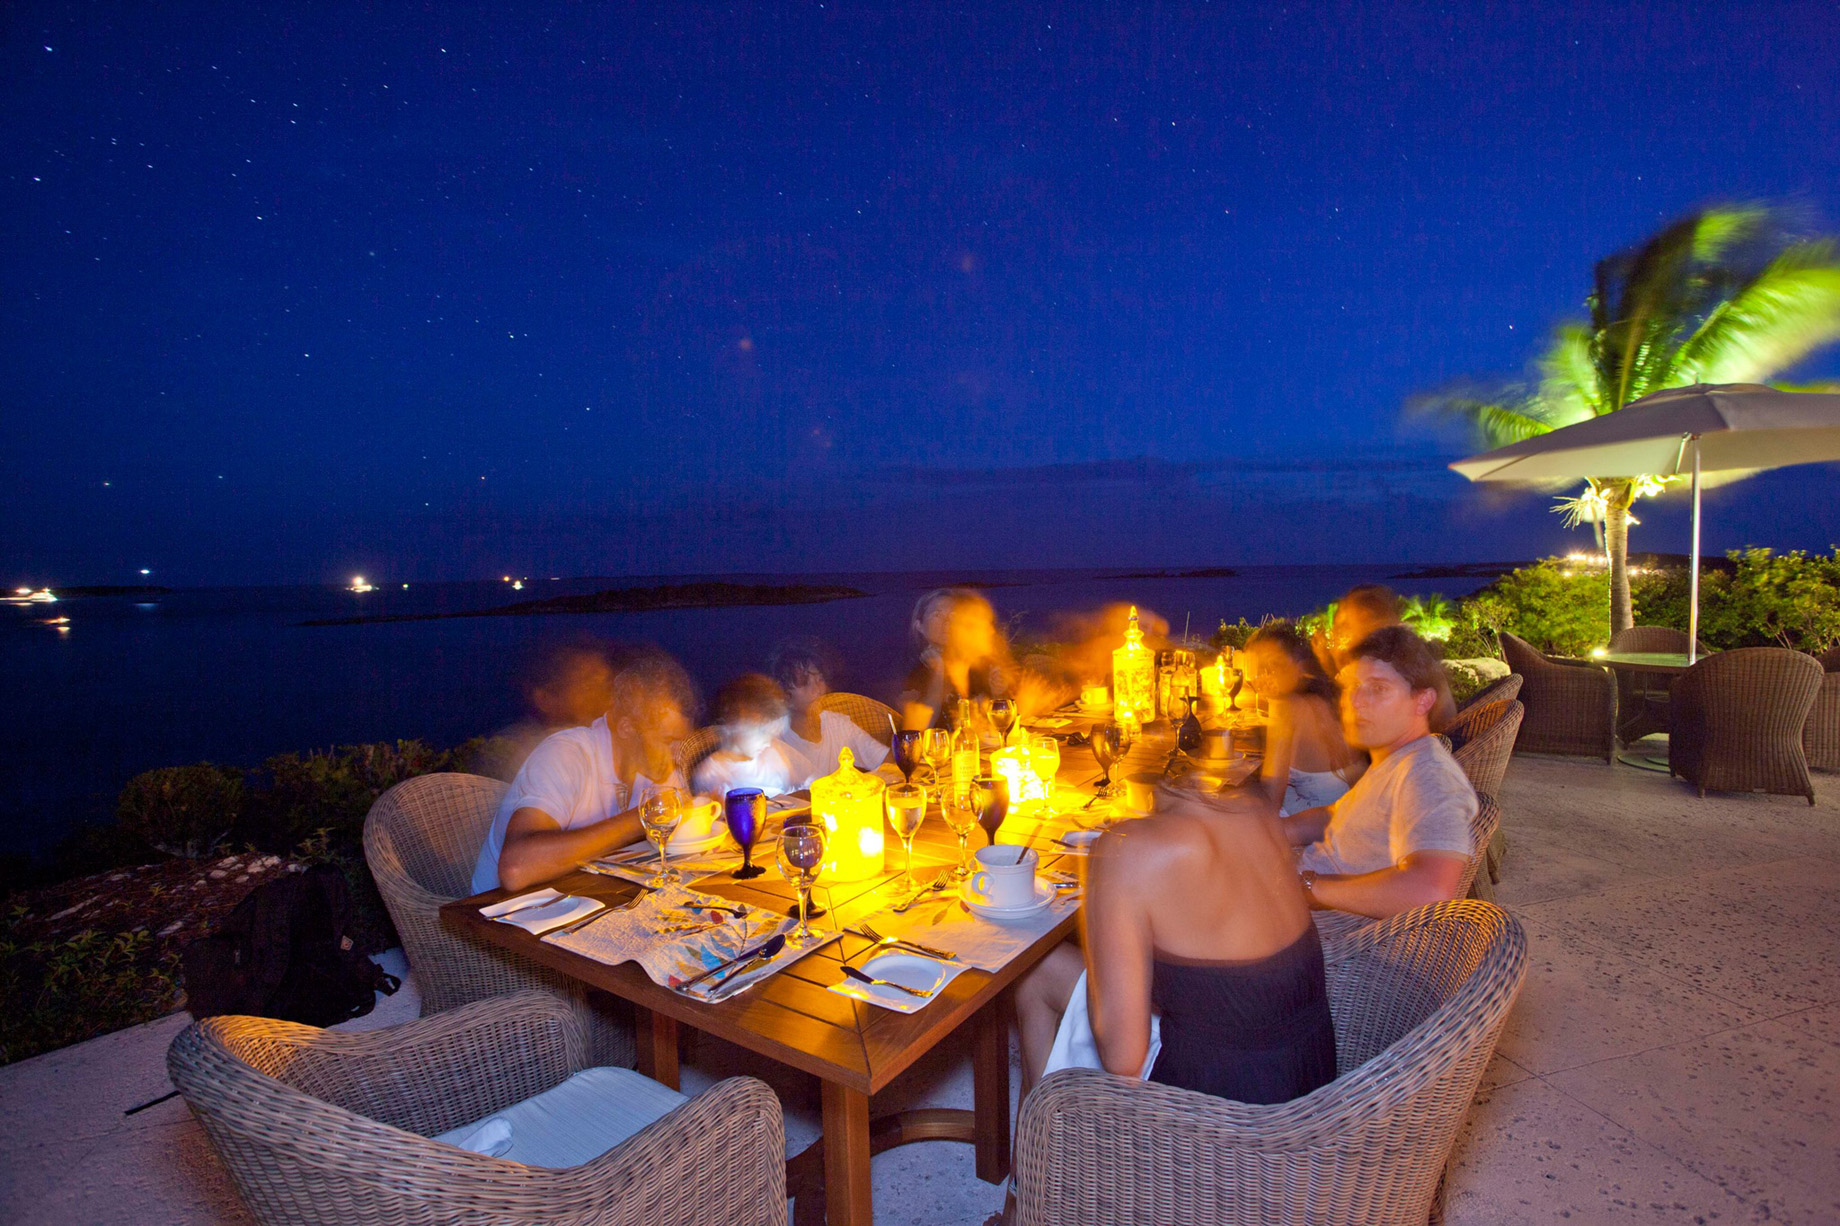 Dine at the Hill House Restaurant on Fowl Cay Island – Take A Luxury Getaway To The Bahamas